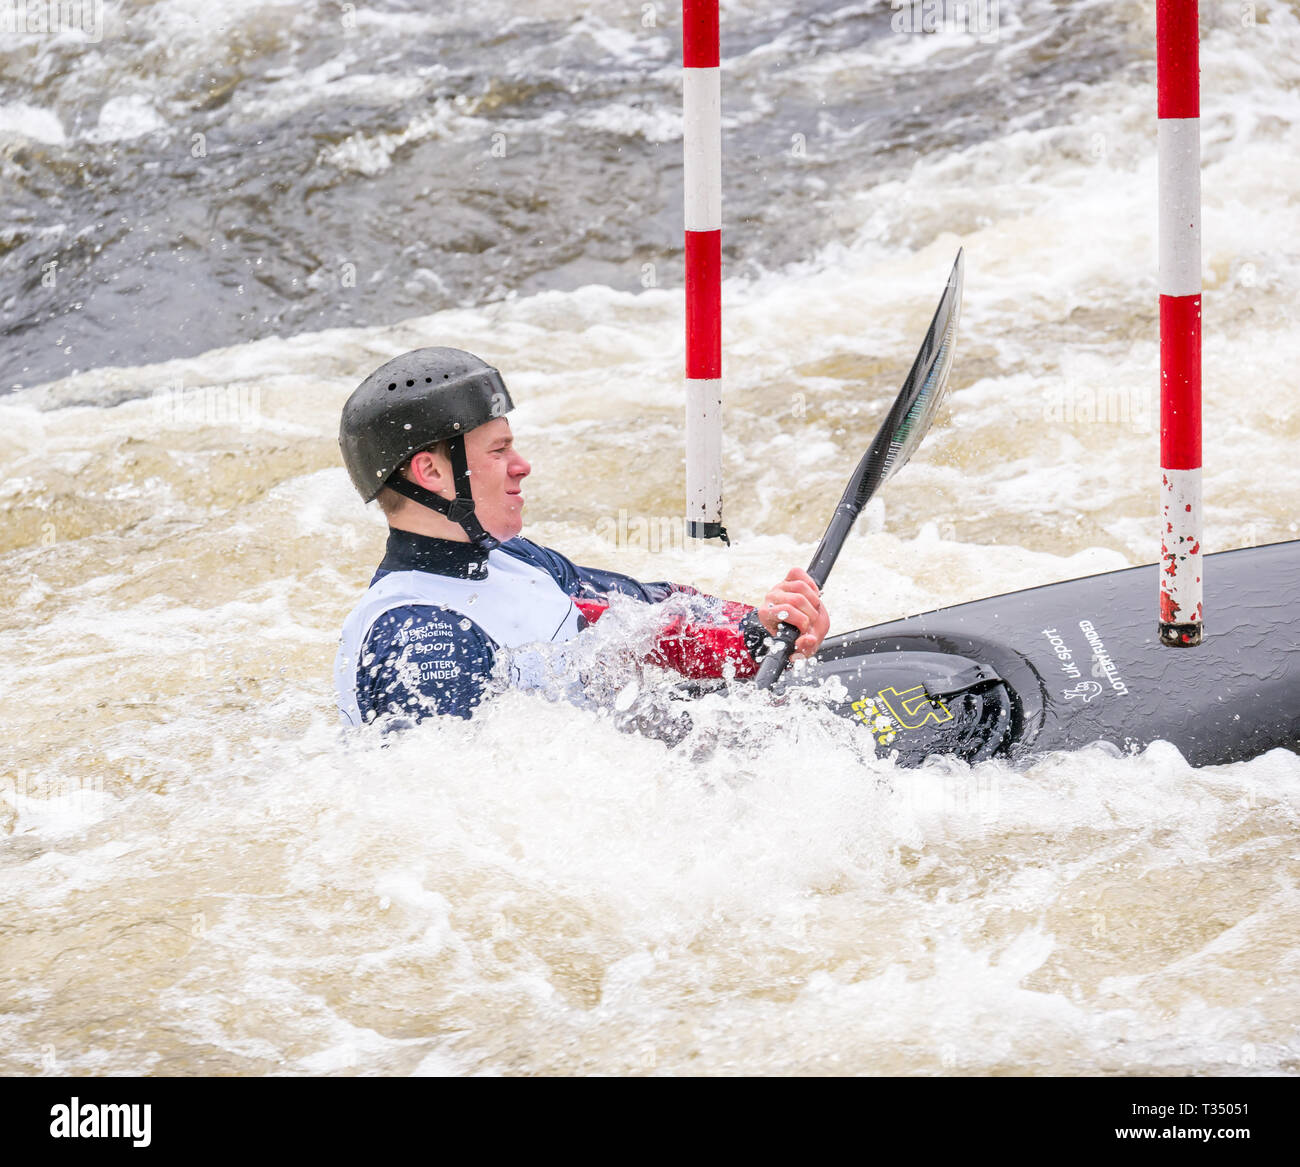 Grandtully, Perthshire, Scotland, United Kingdom, 6 April 2019. Grandtully Premier Canoe Slalom: Danny Taylor from Viking Kayak Club competes in the men's premier kayak on the River Tay - Stock Image